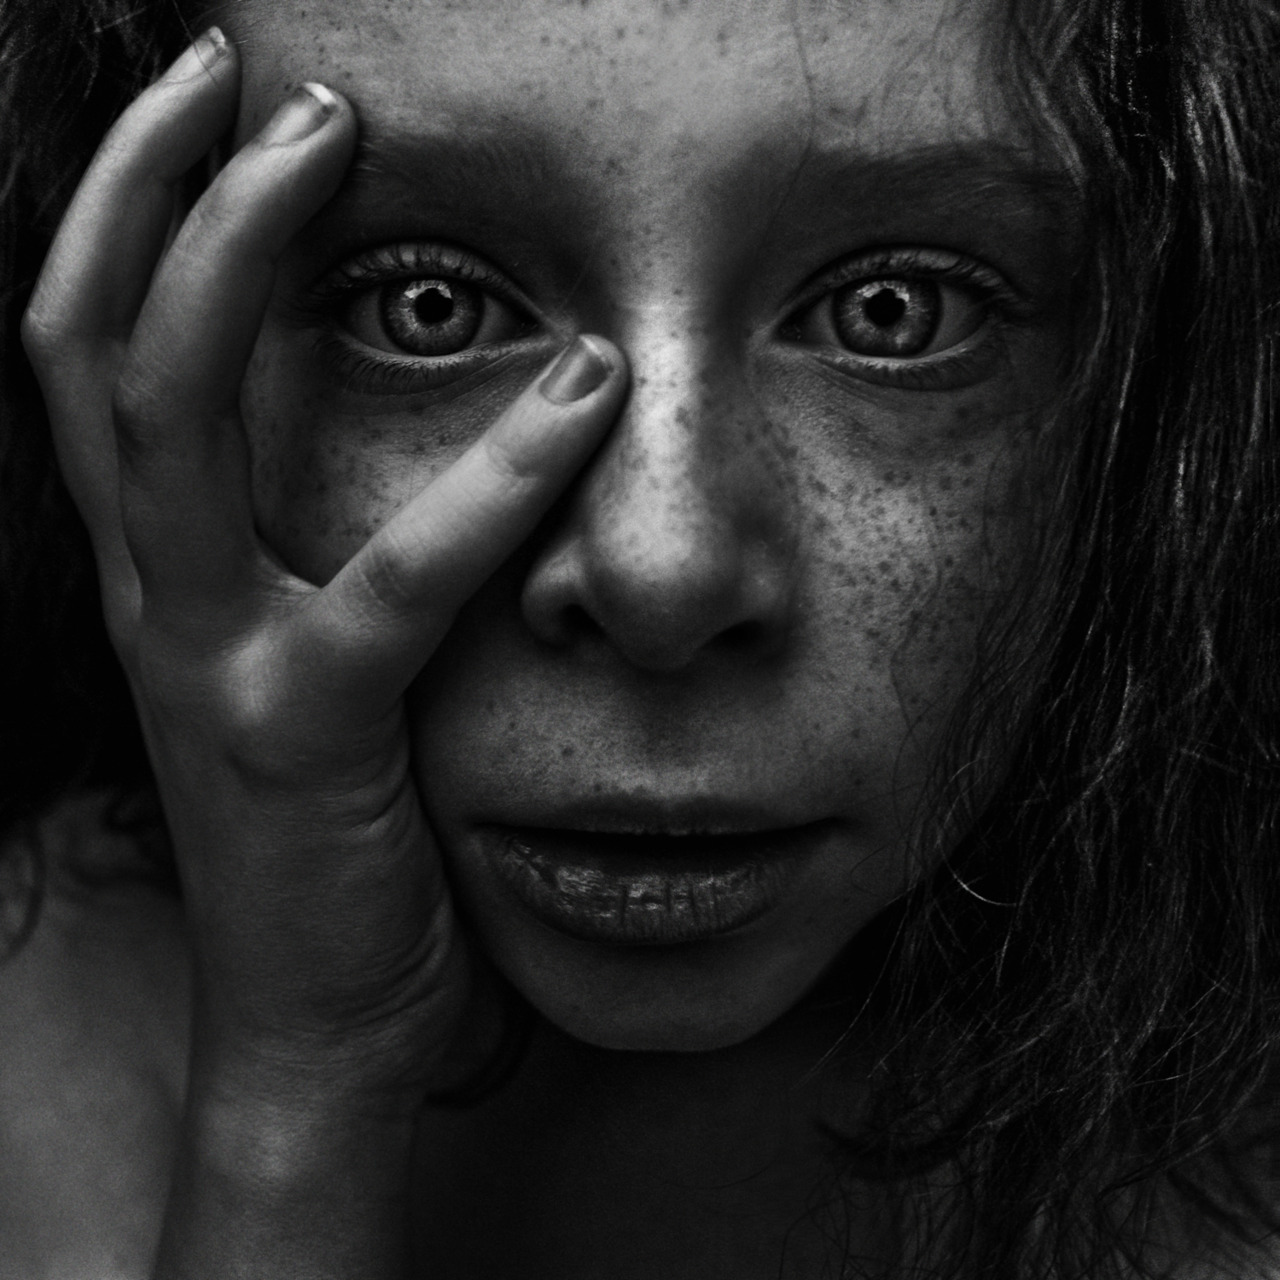 Lee Jeffries, 20103